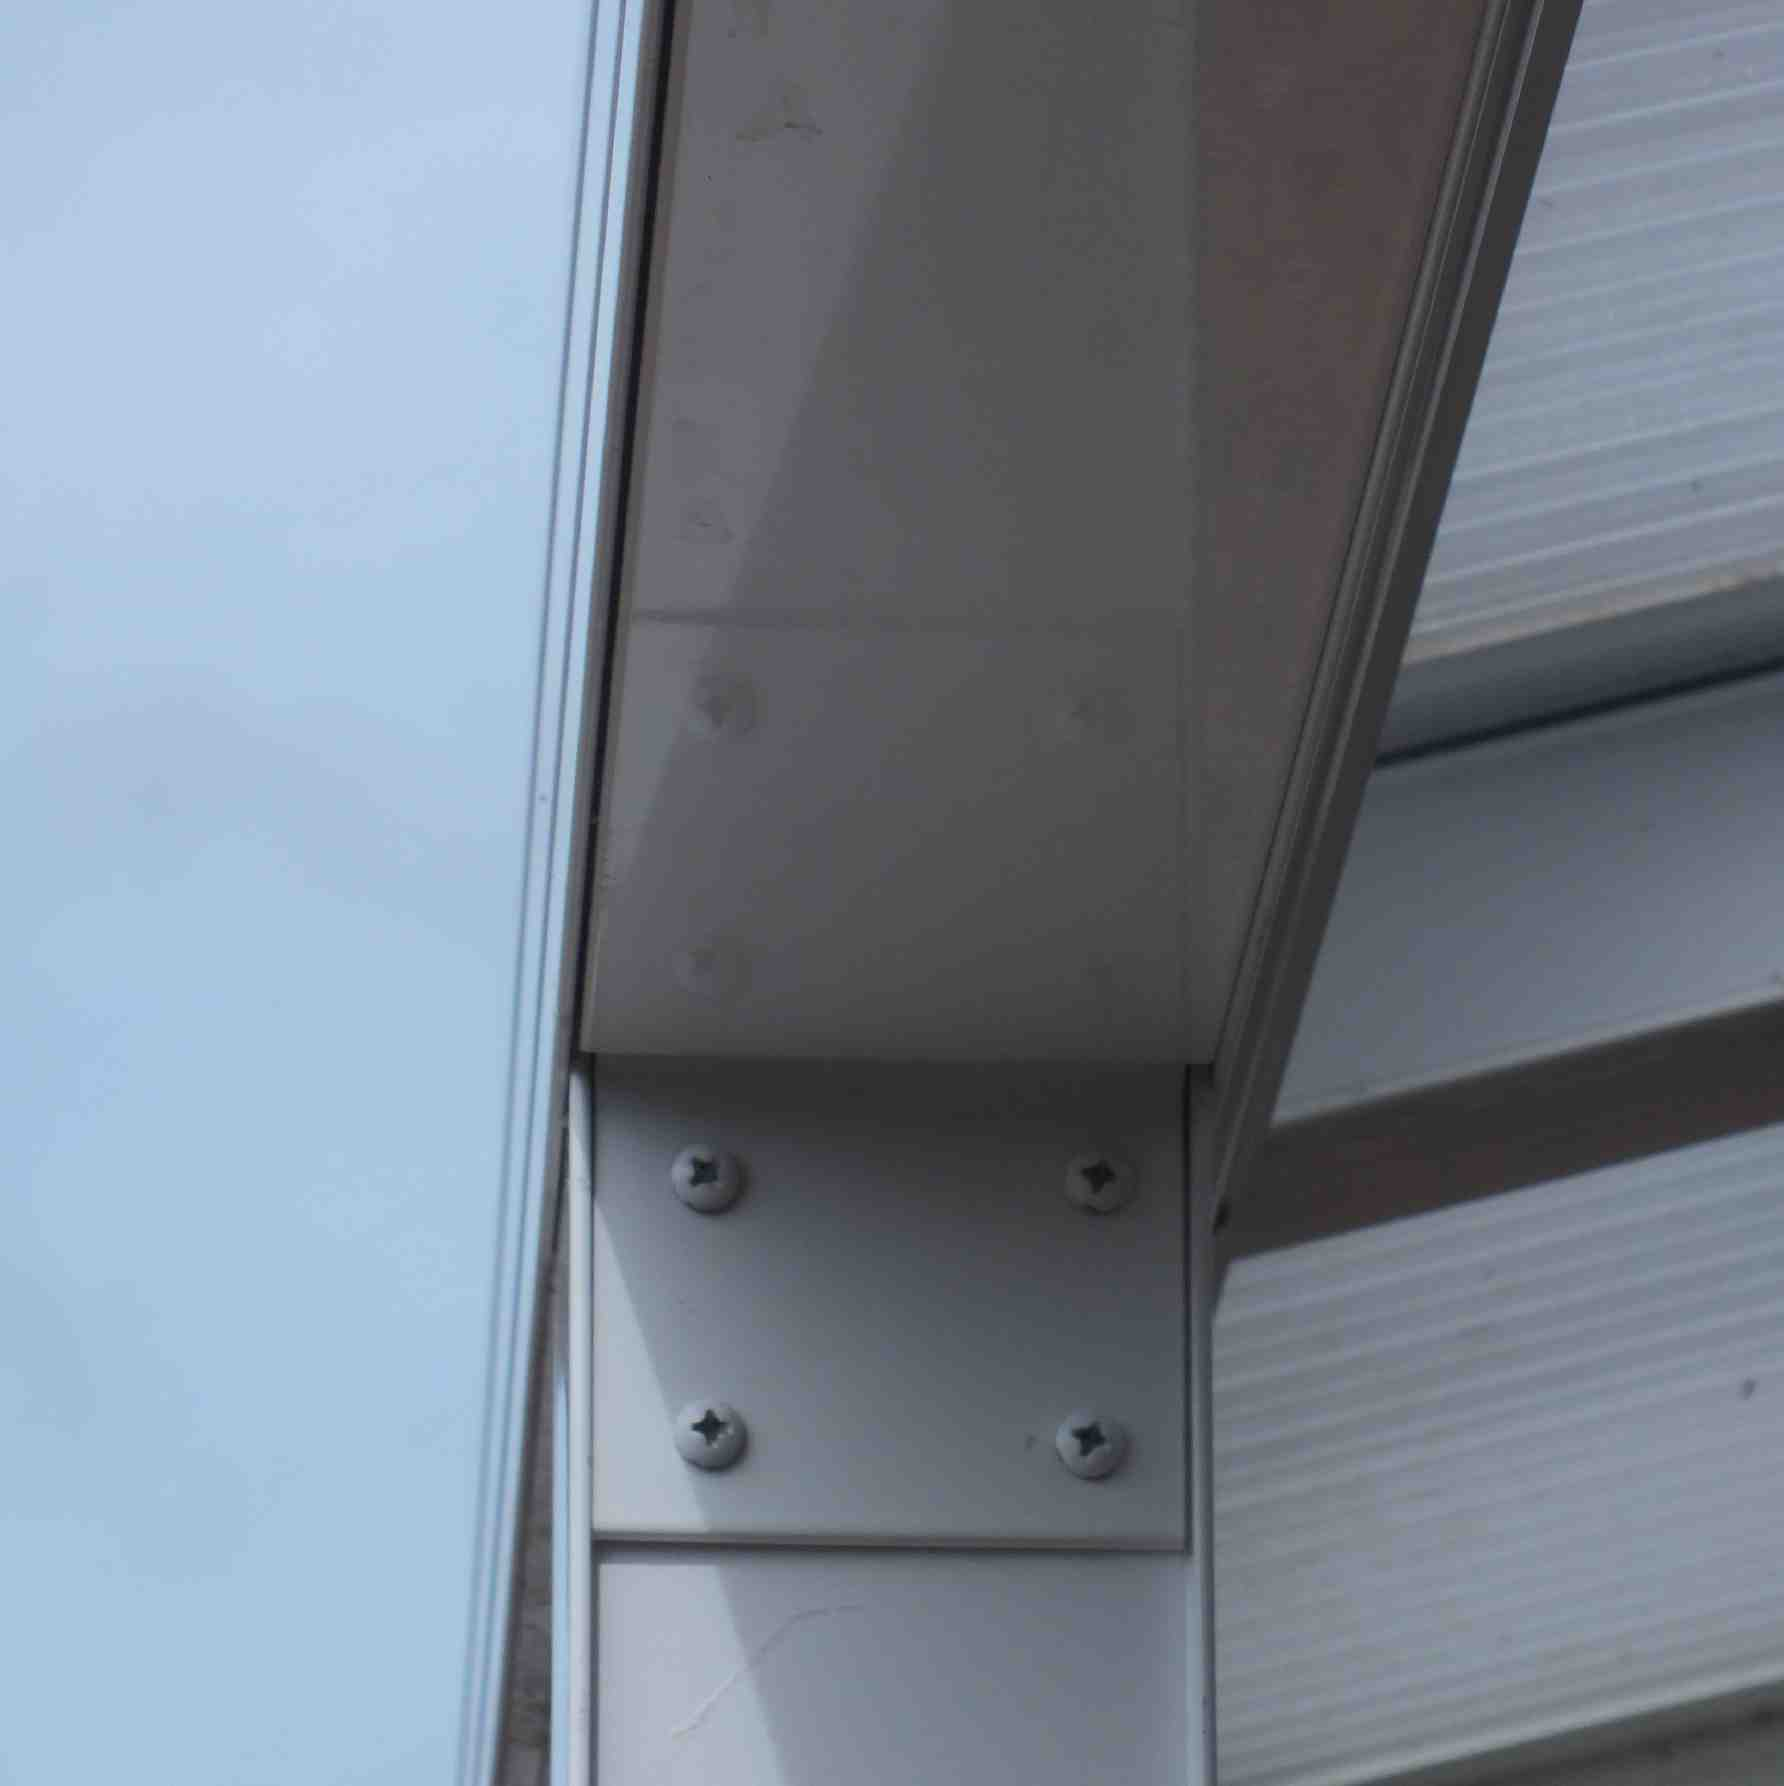 Affordable Omega Verandah with 16mm Polycarbonate Glazing - 6.0m (W) x 1.5m (P), (3) Supporting Posts